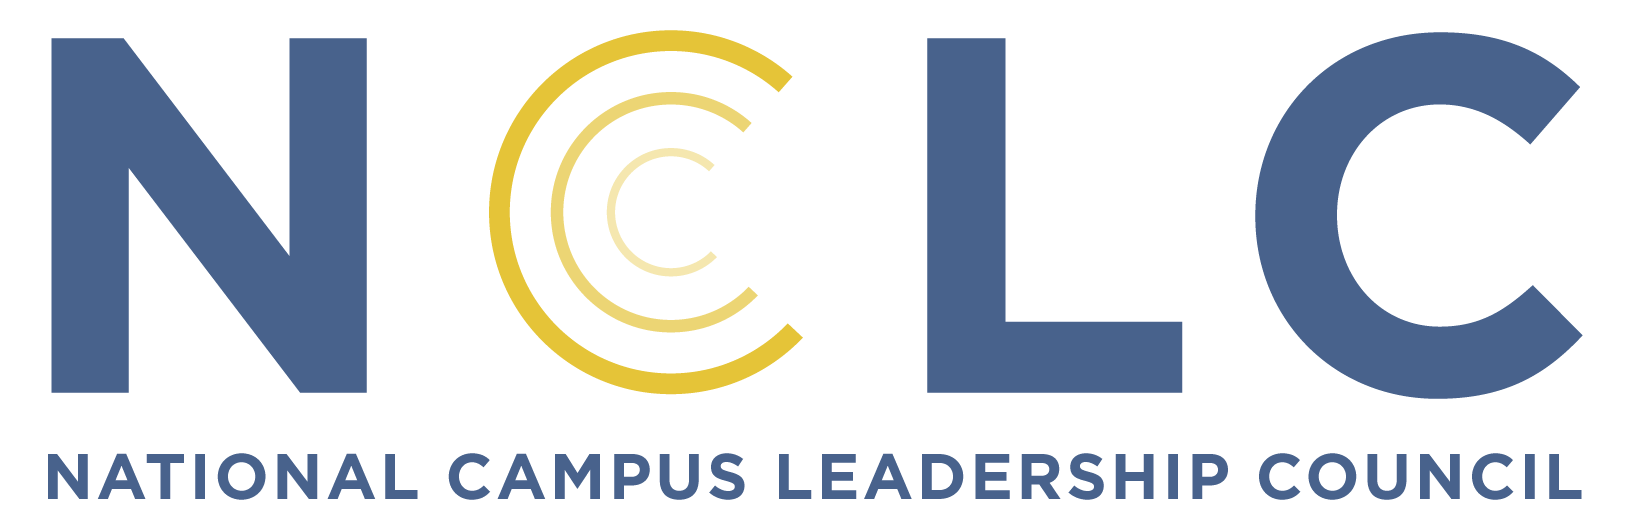 National Campus Leadership Council